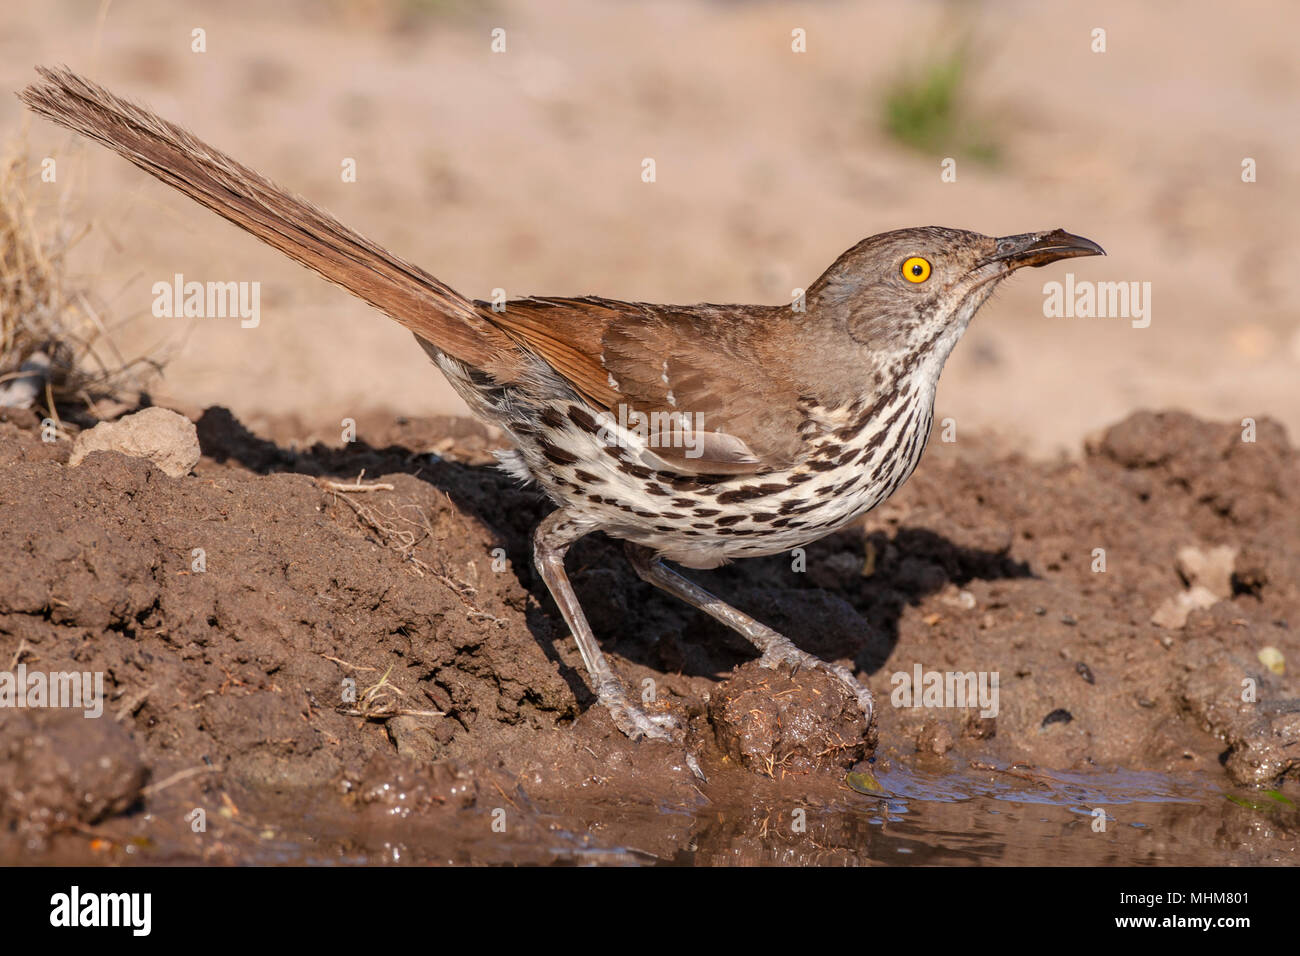 Long-billed Thrasher, Toxostoma longirostre, looking for water and relief from summer heat, on a ranch in South Texas. Stock Photo